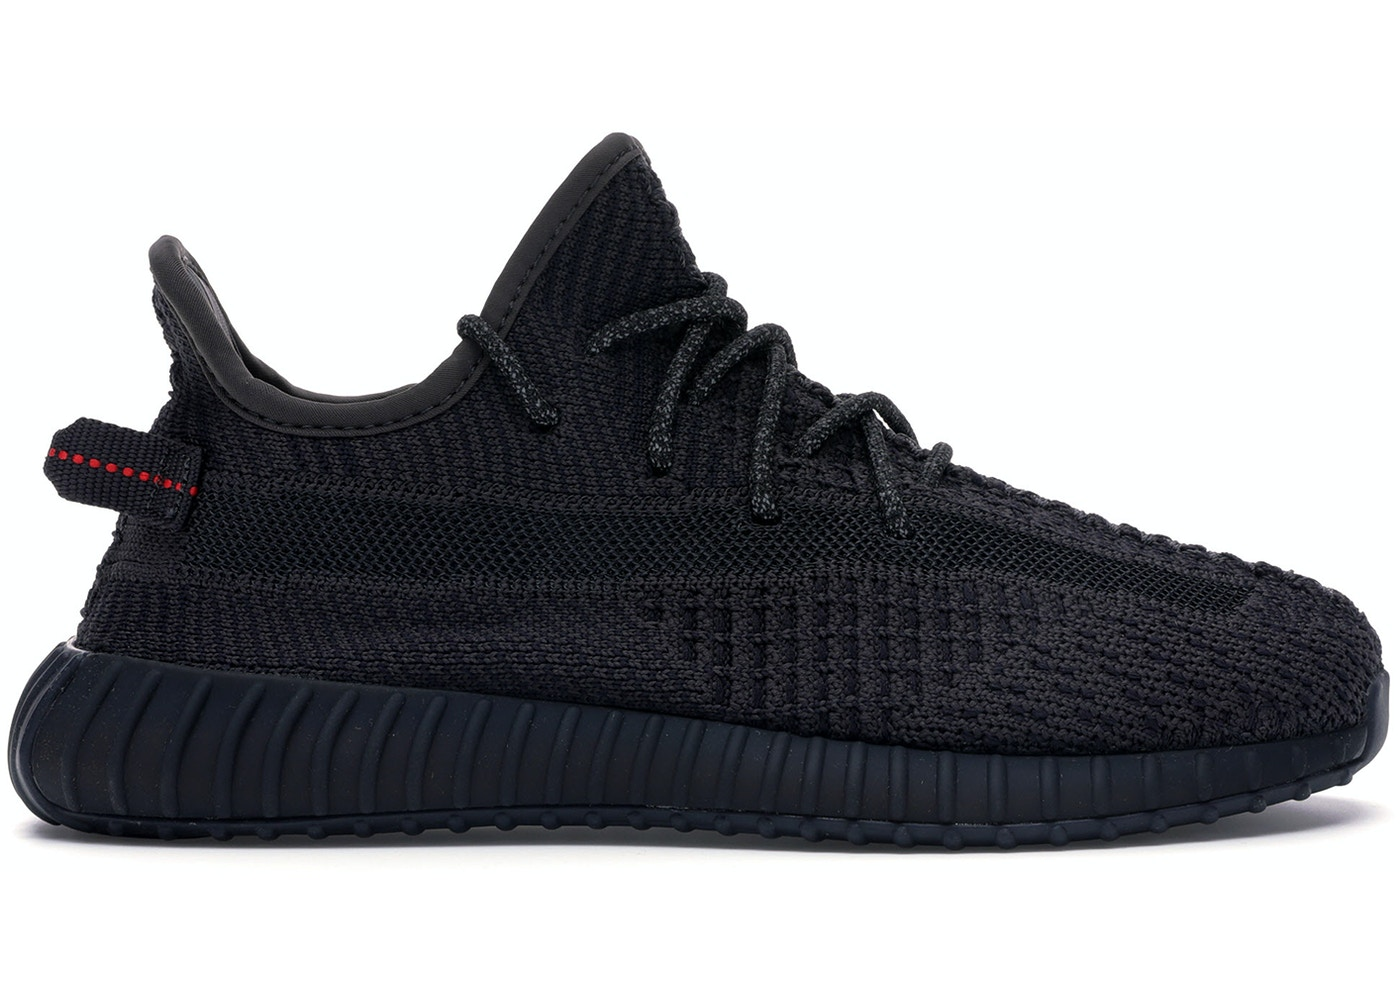 timeless design 21e64 6a12d adidas Yeezy Boost 350 V2 Black (Kids) (Non-Reflective)